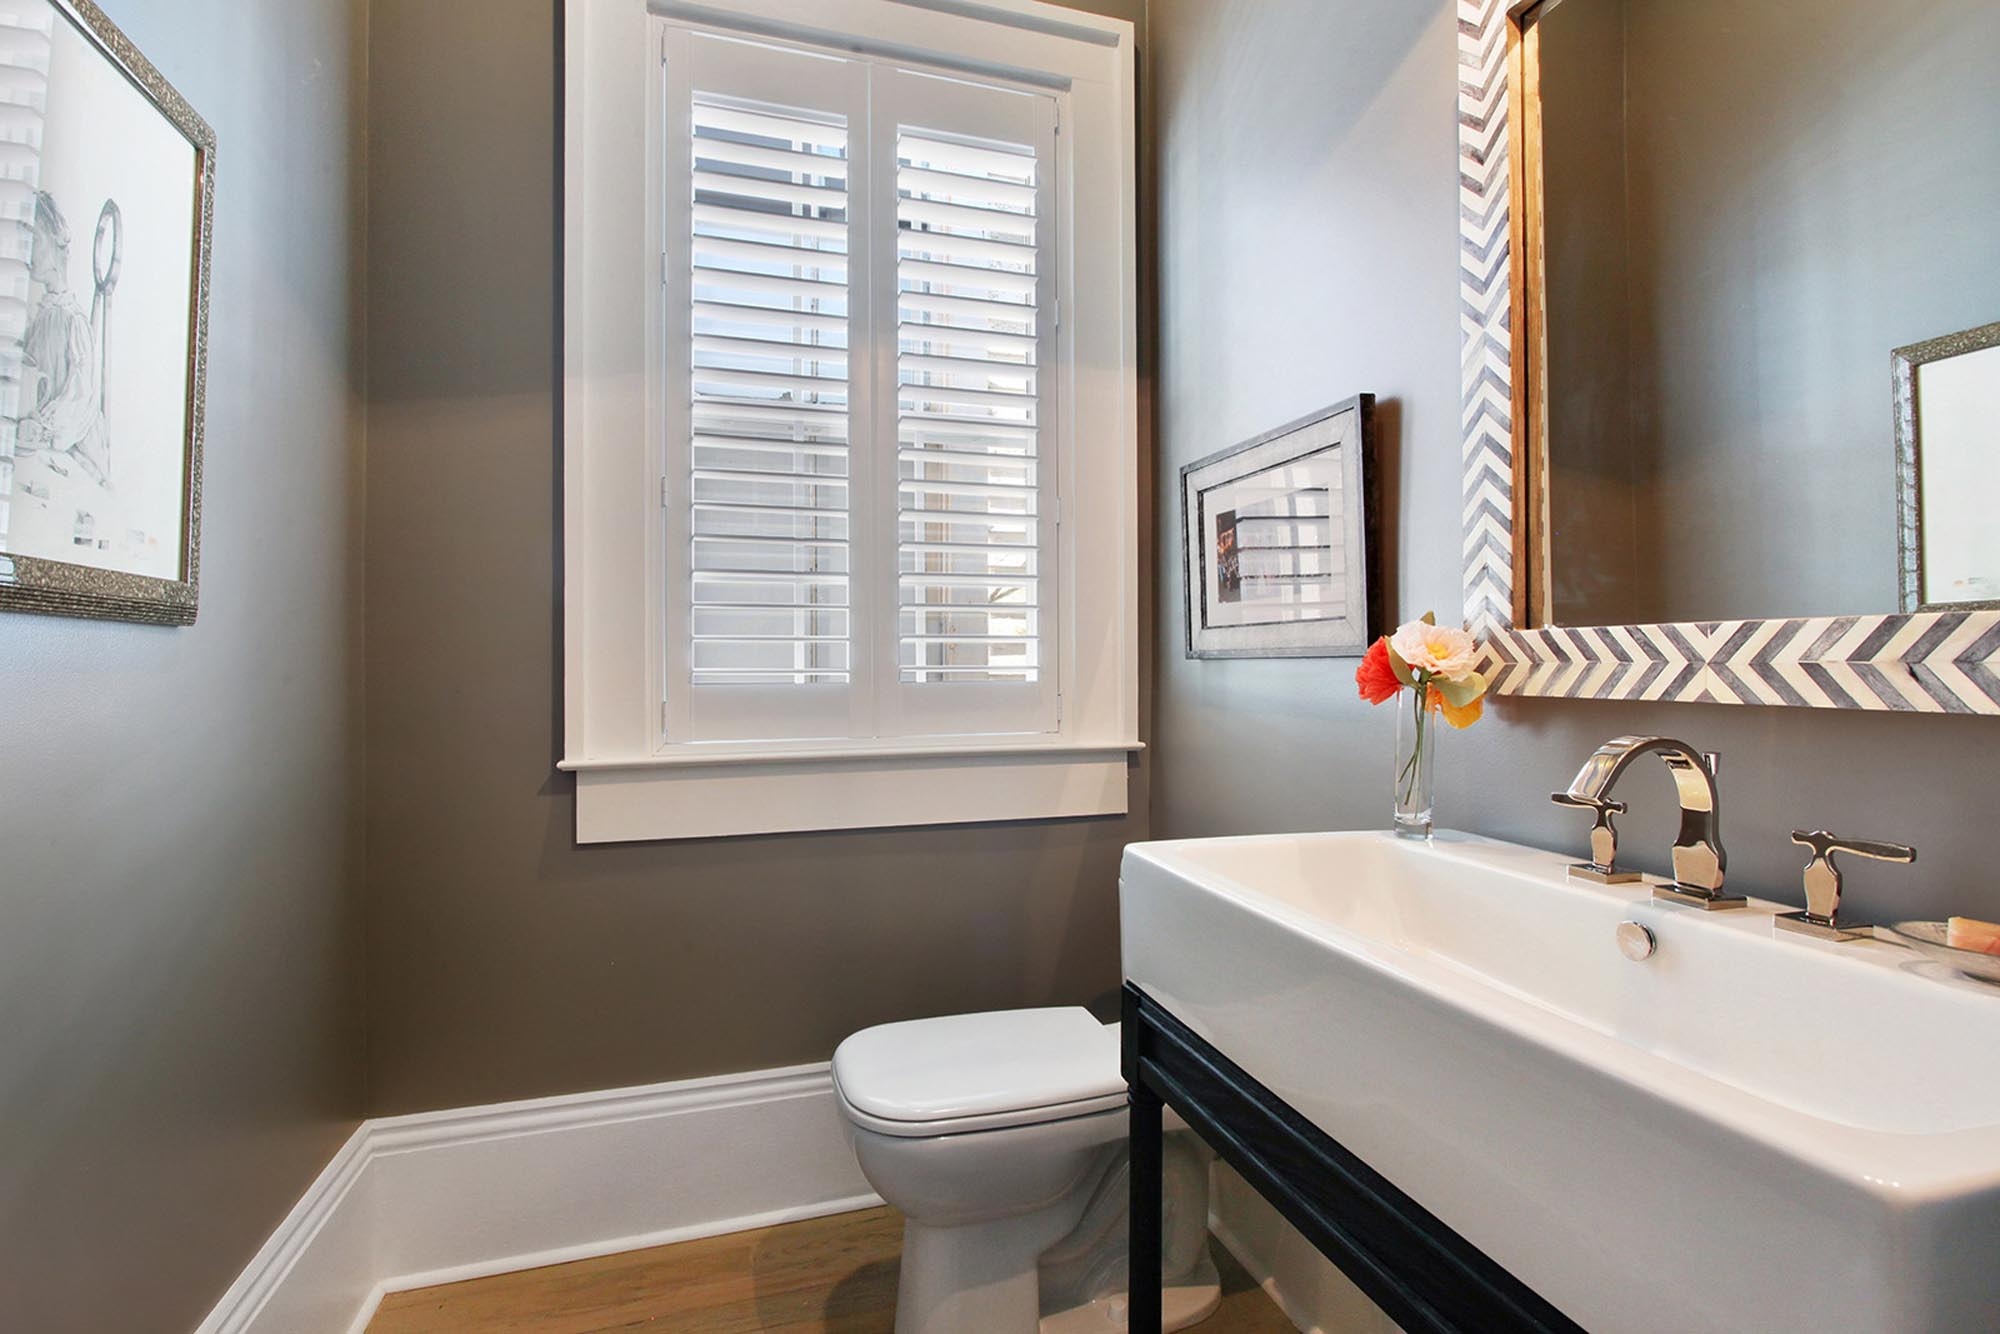 Stylish bathroom with decorative framed mirror over a long sink